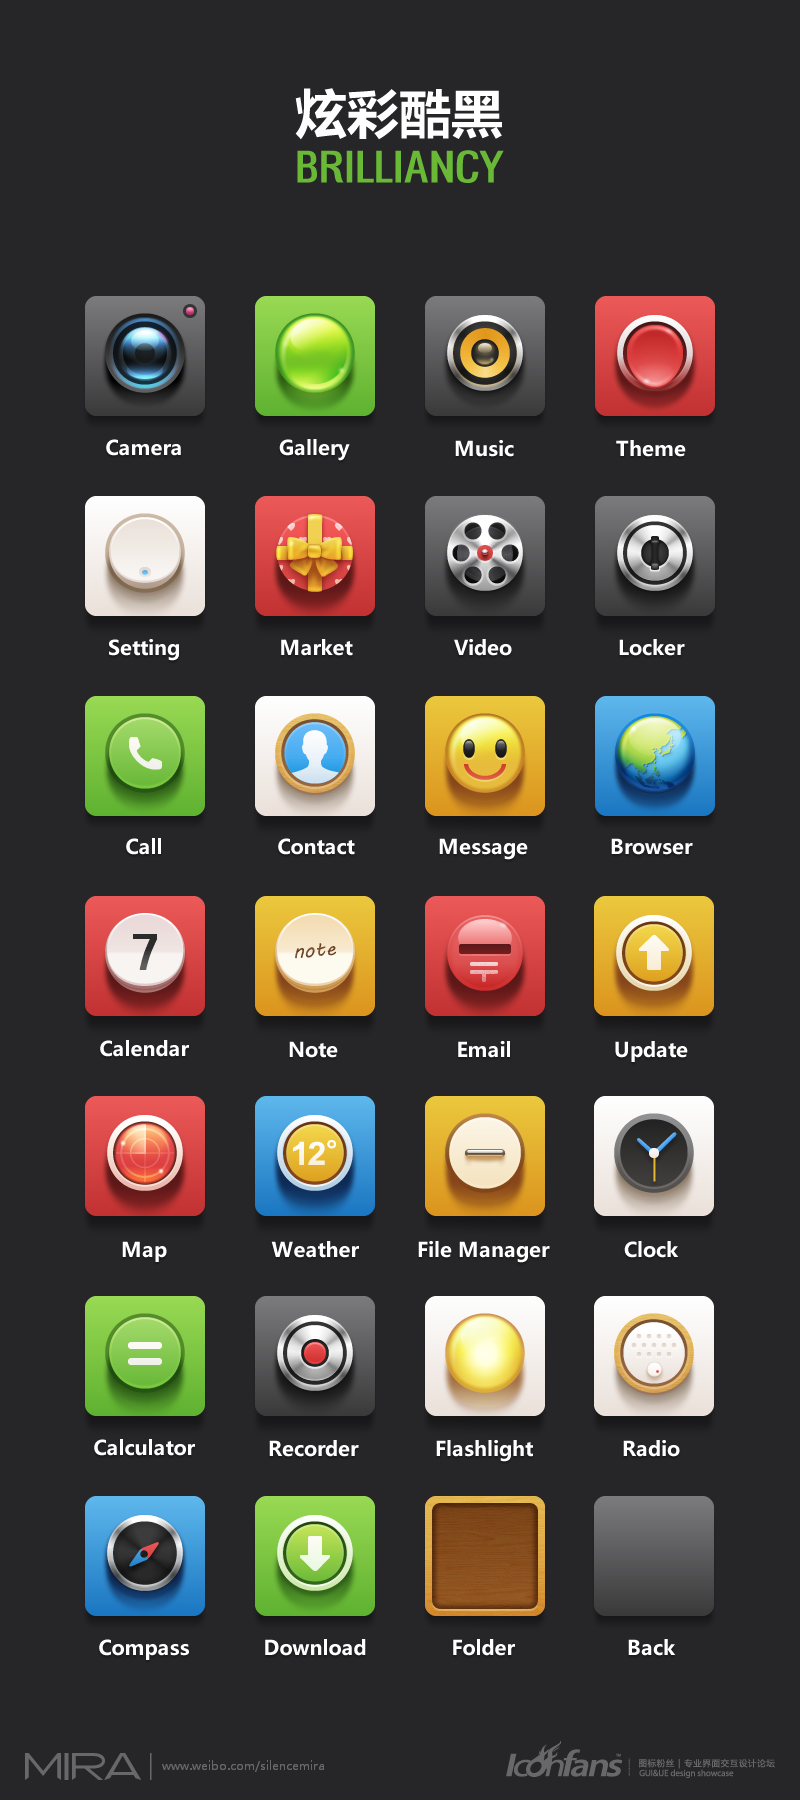 Apps Icon Brilliancy Logomarca